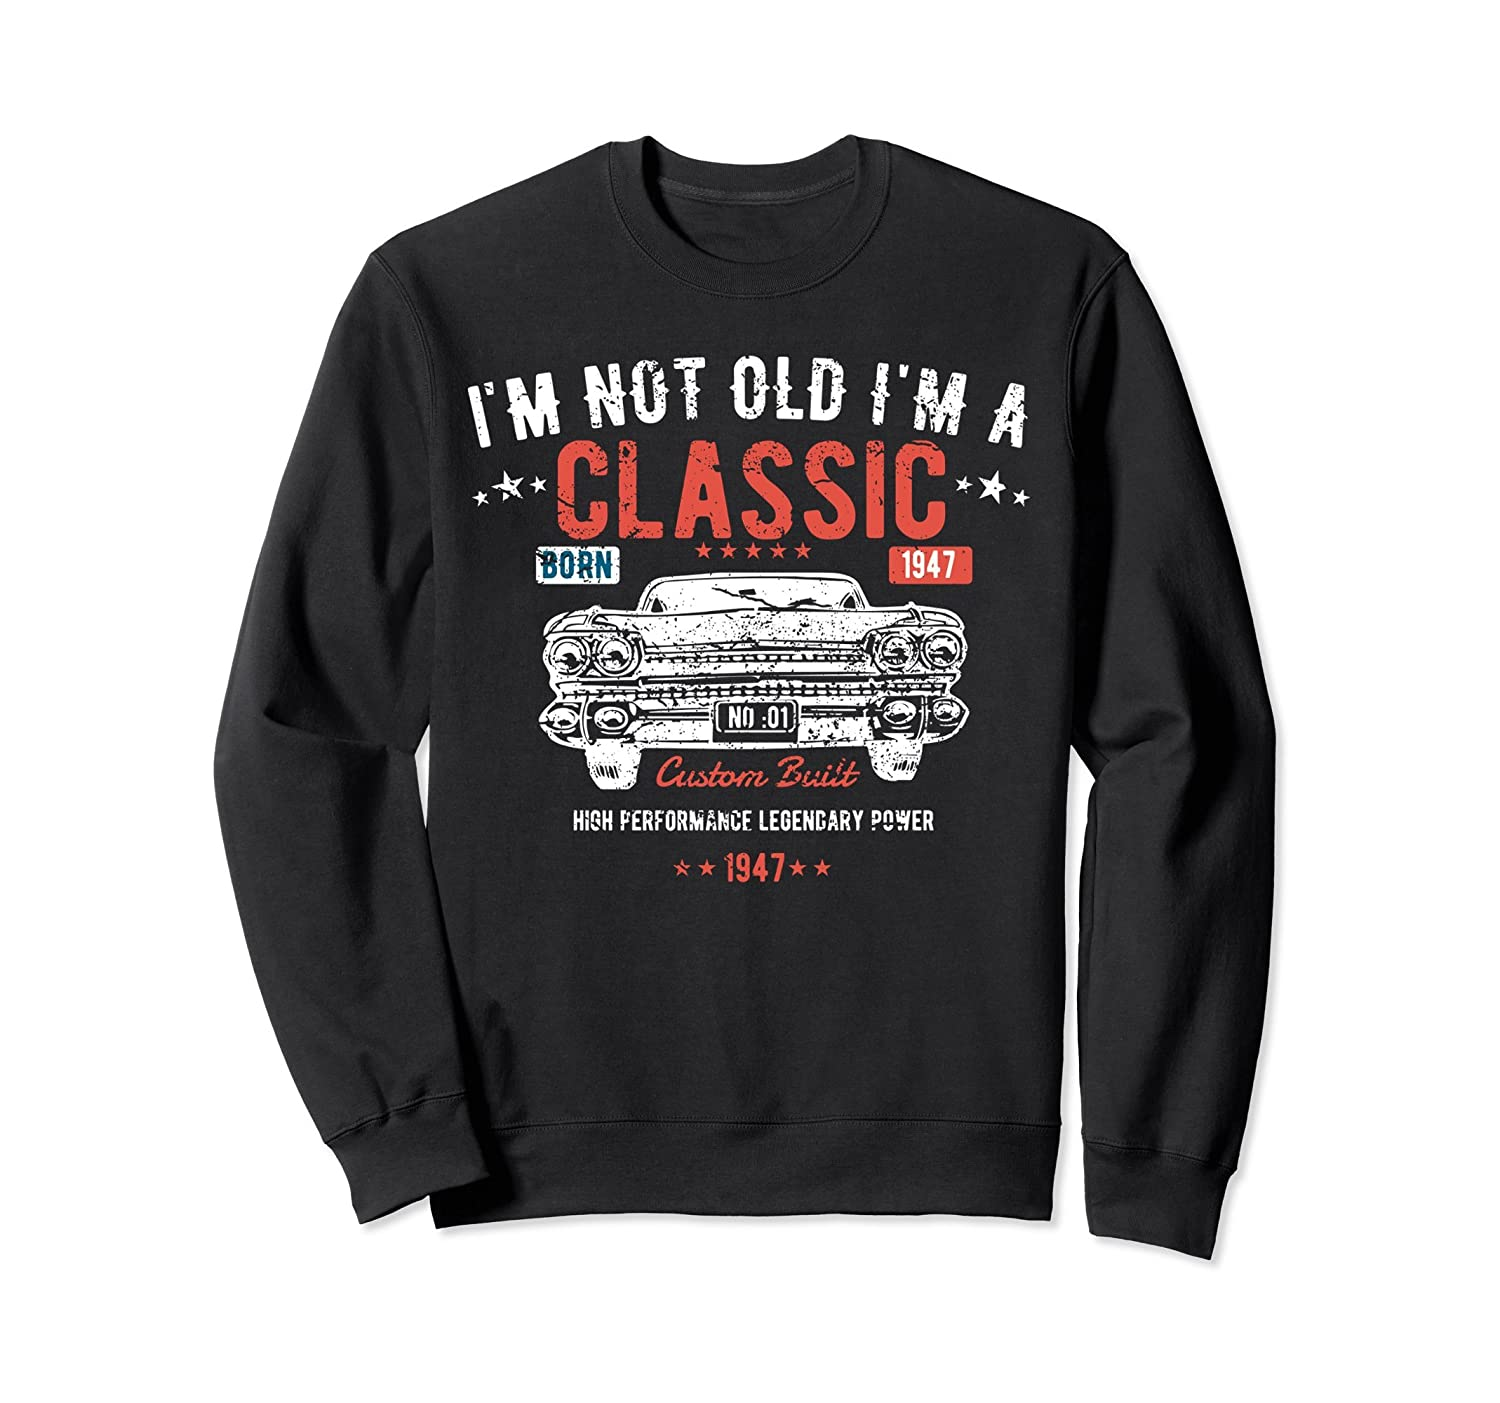 71st Birthday Sweatshirt I'm Not Old I'm a Classic 1947-Awarplus